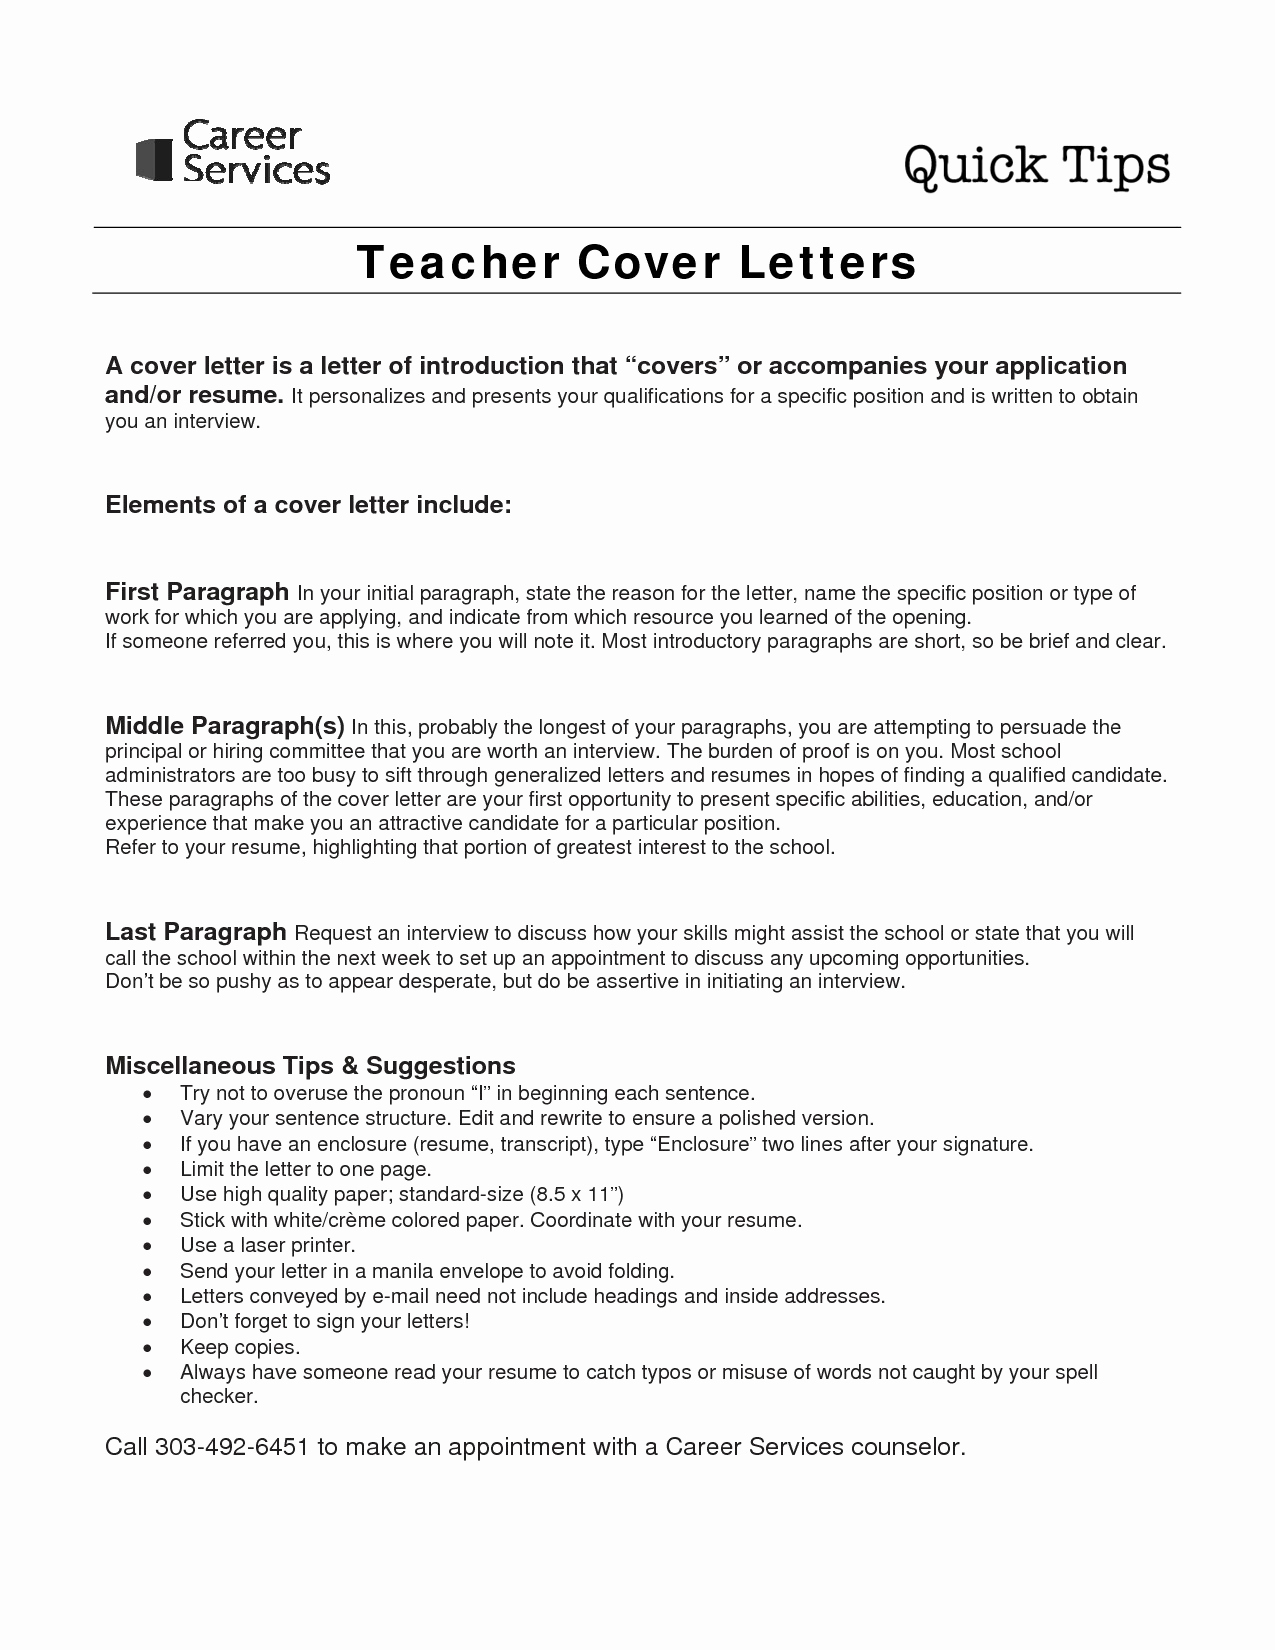 Letter Of Introduction Template - Cover Letter Introduction Examples Fresh Resume Cover Letter format